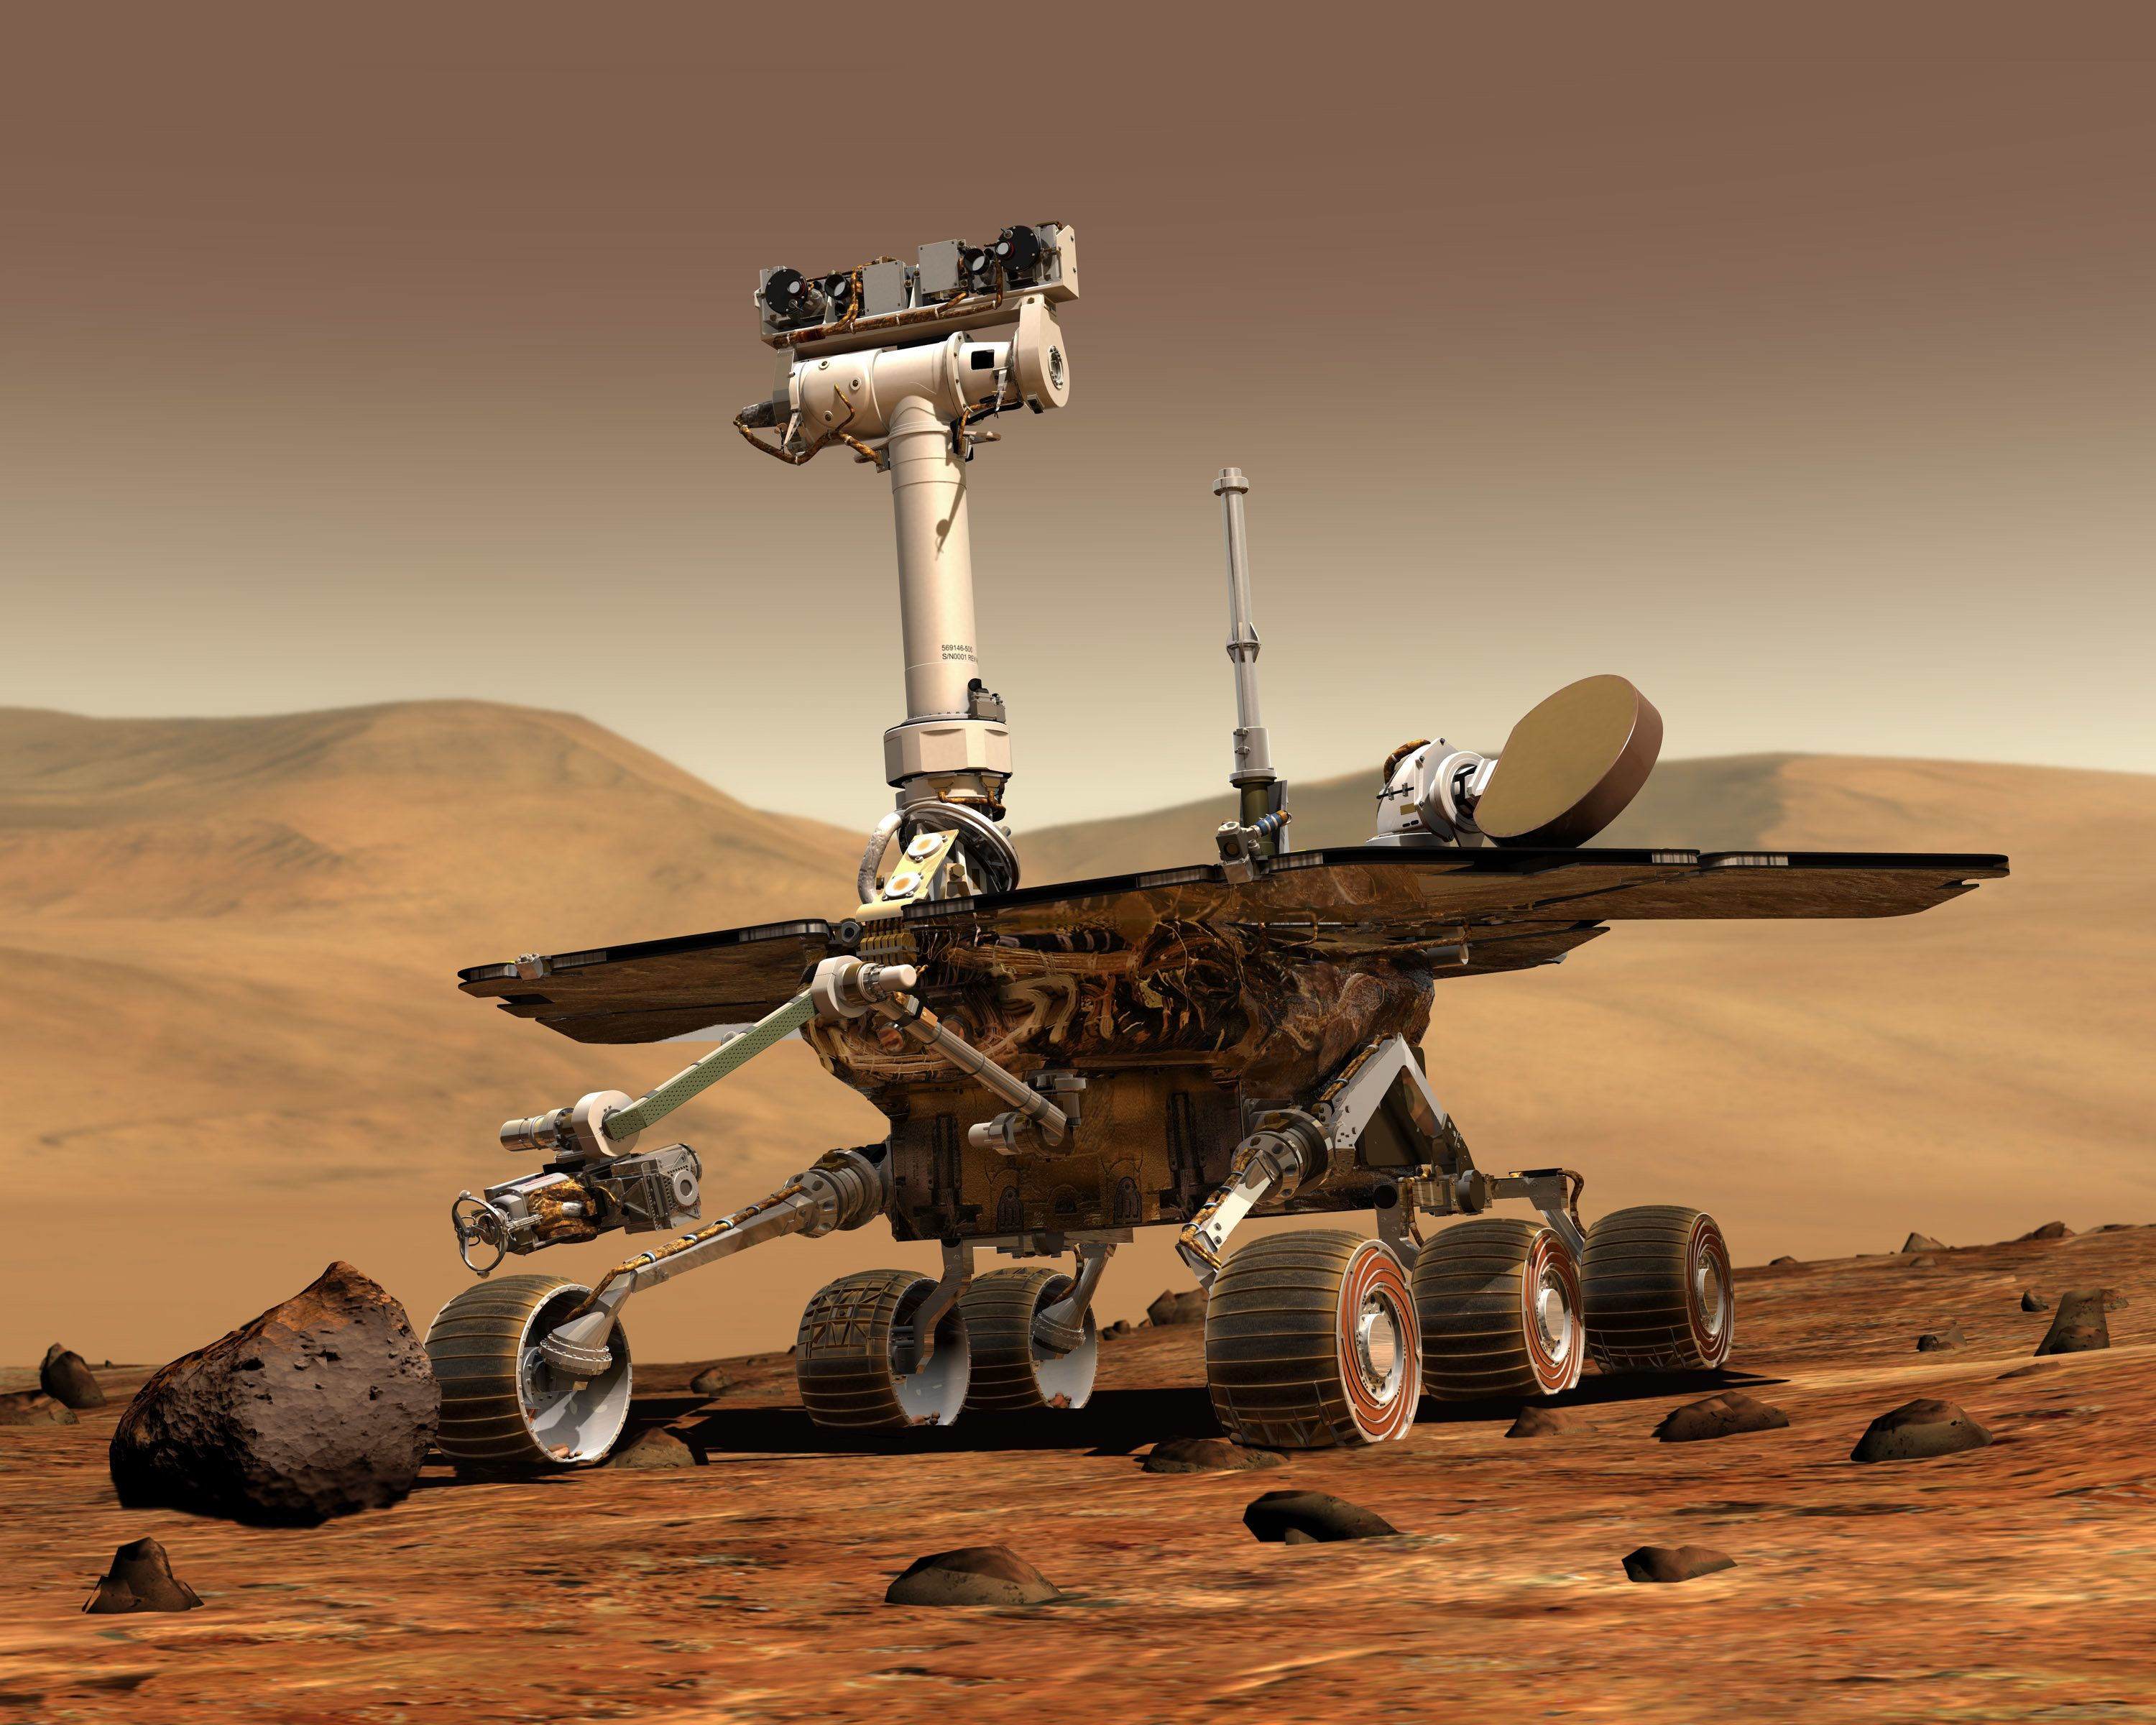 Opportunity, Nasa's Longest-Running Mars Rover, Is Officially